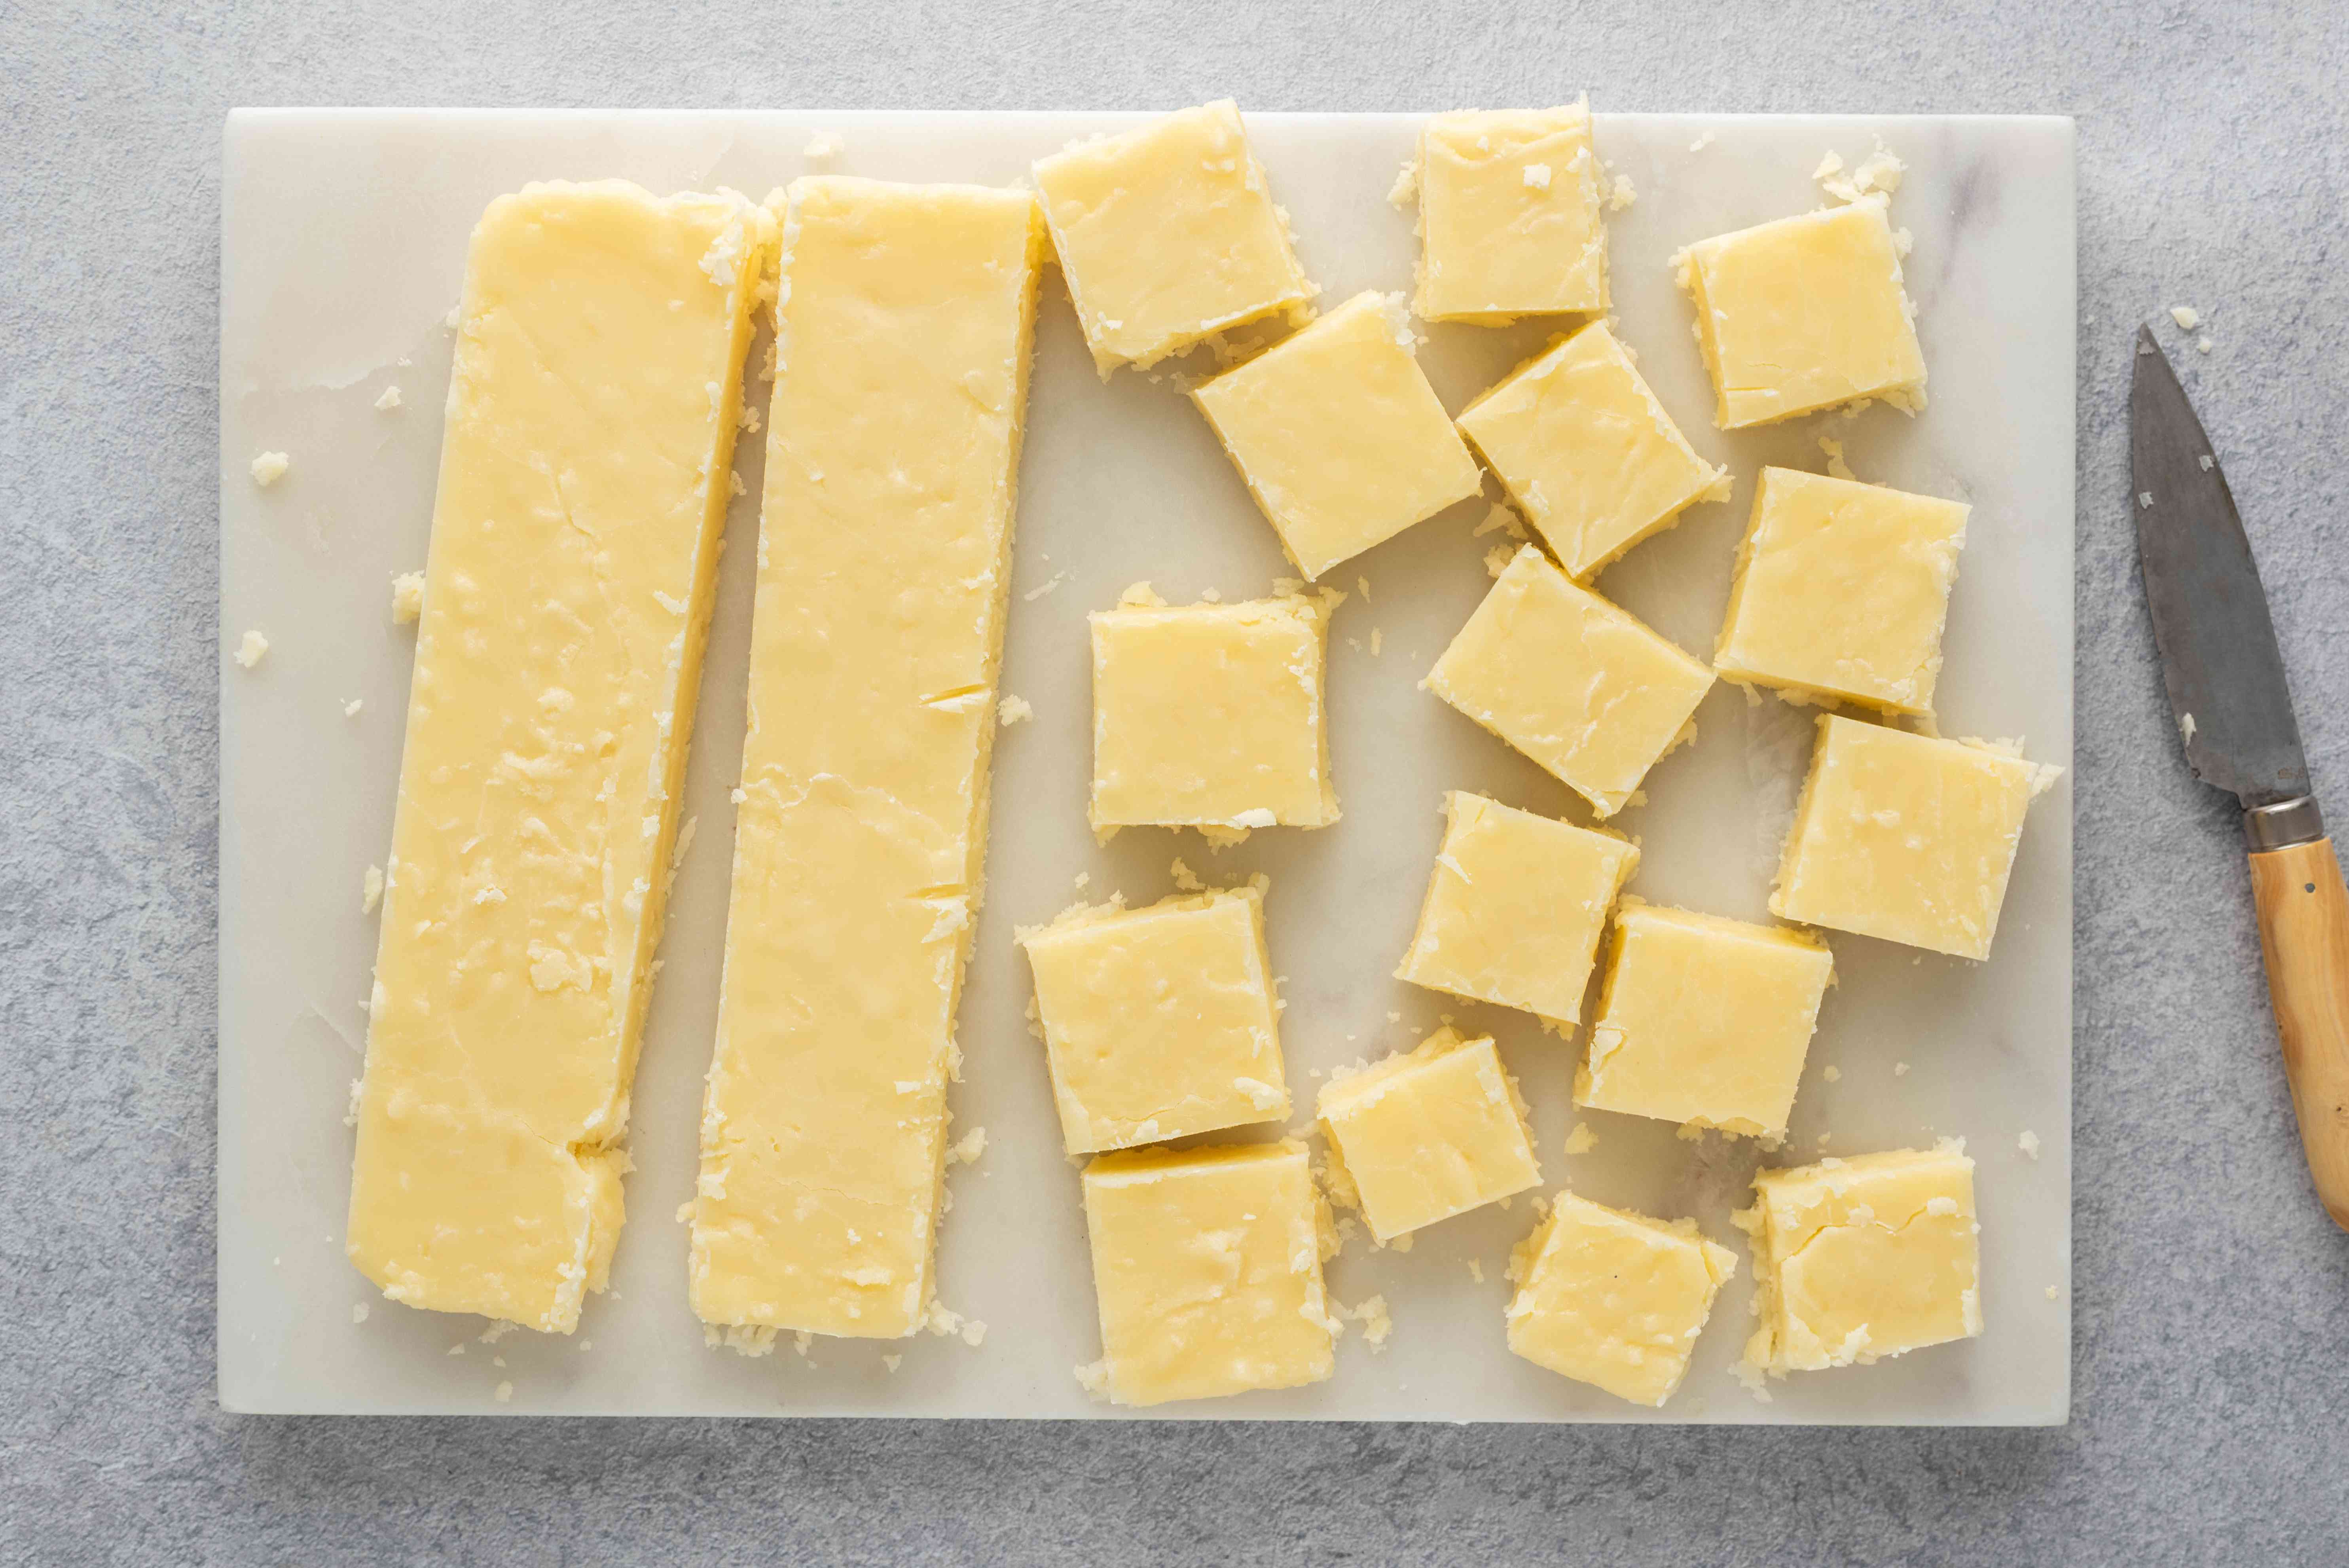 Old Fashioned Fudge With Shredded Coconut cut into small squares